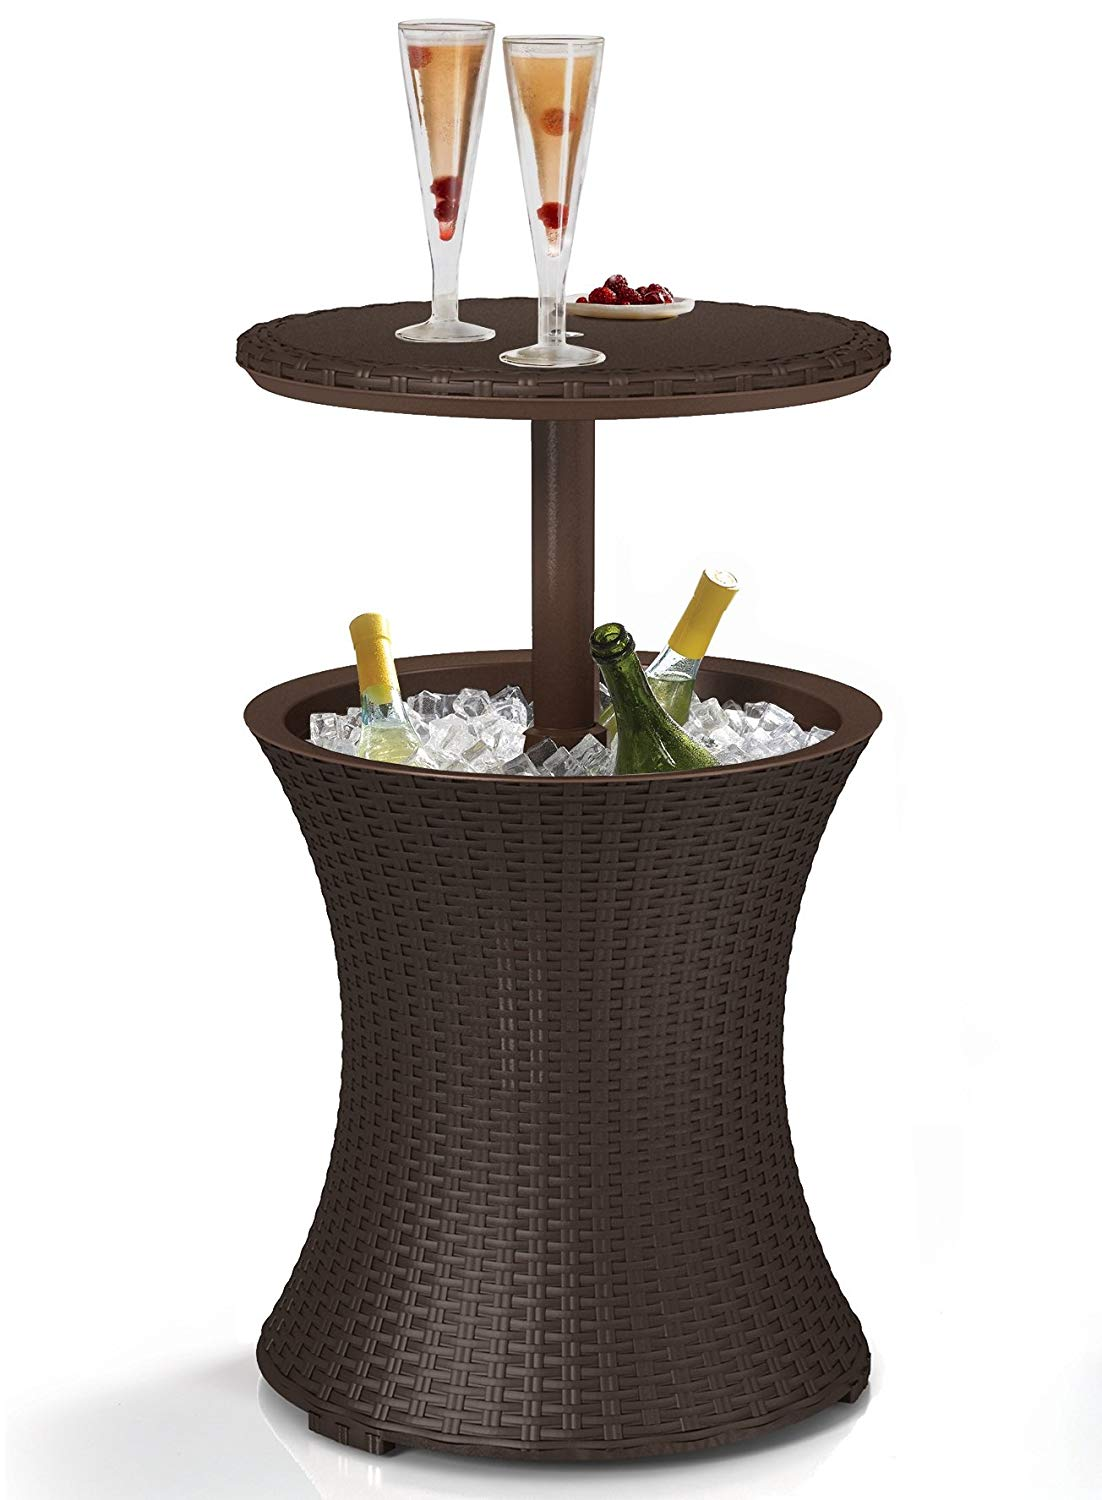 keter gal cool bar rattan style outdoor patio pool side table cooler brown wicker garden yellow bedside lamps threshold furniture emerald green accent umbrella and stand world